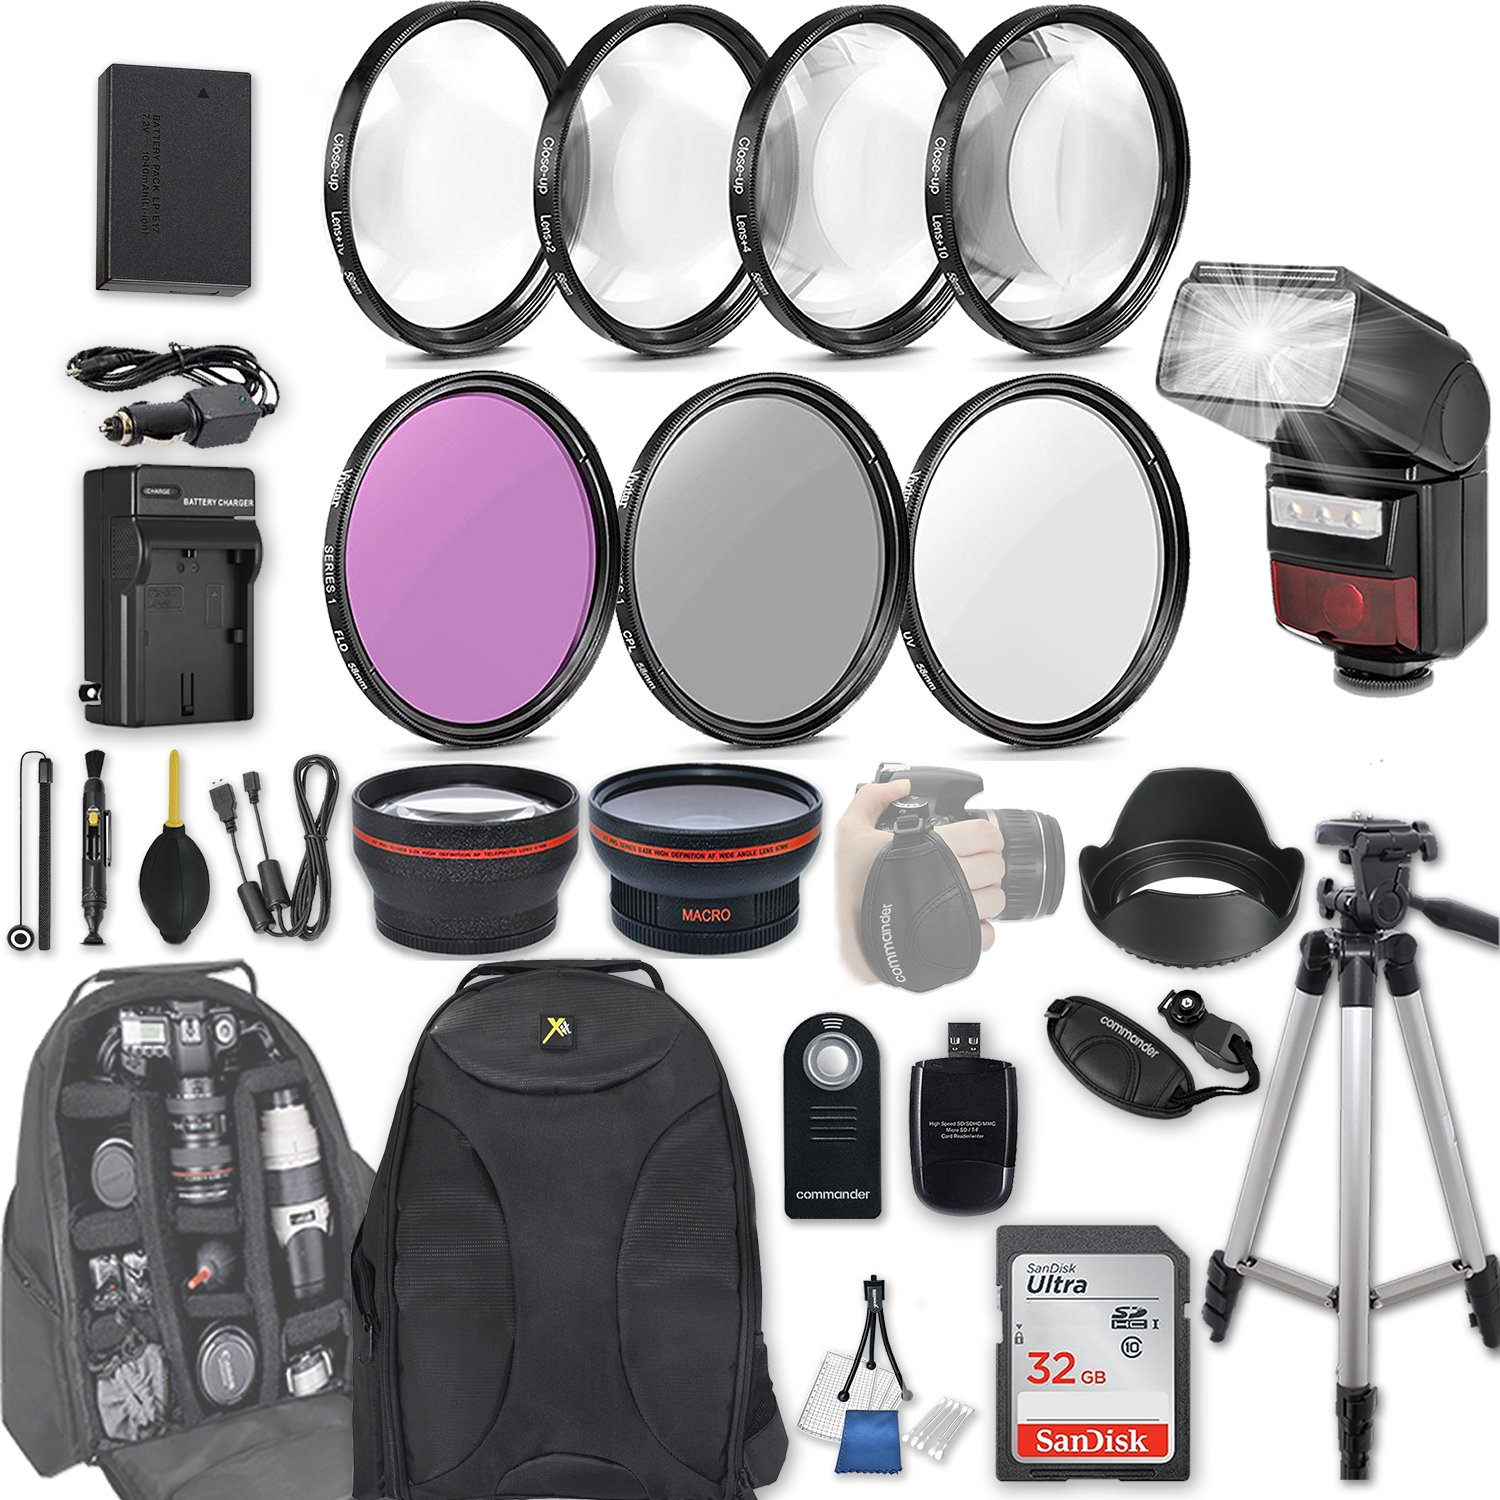 58mm 28 Pc Accessory Kit for Canon EOS Rebel SL2, 200D DSLR with 0.43x Wide Angle Lens, 2.2x Telephoto Lens, LED-Flash, 32GB SD, Filter & Macro Kits, Backpack Case, and More by 33rd Street